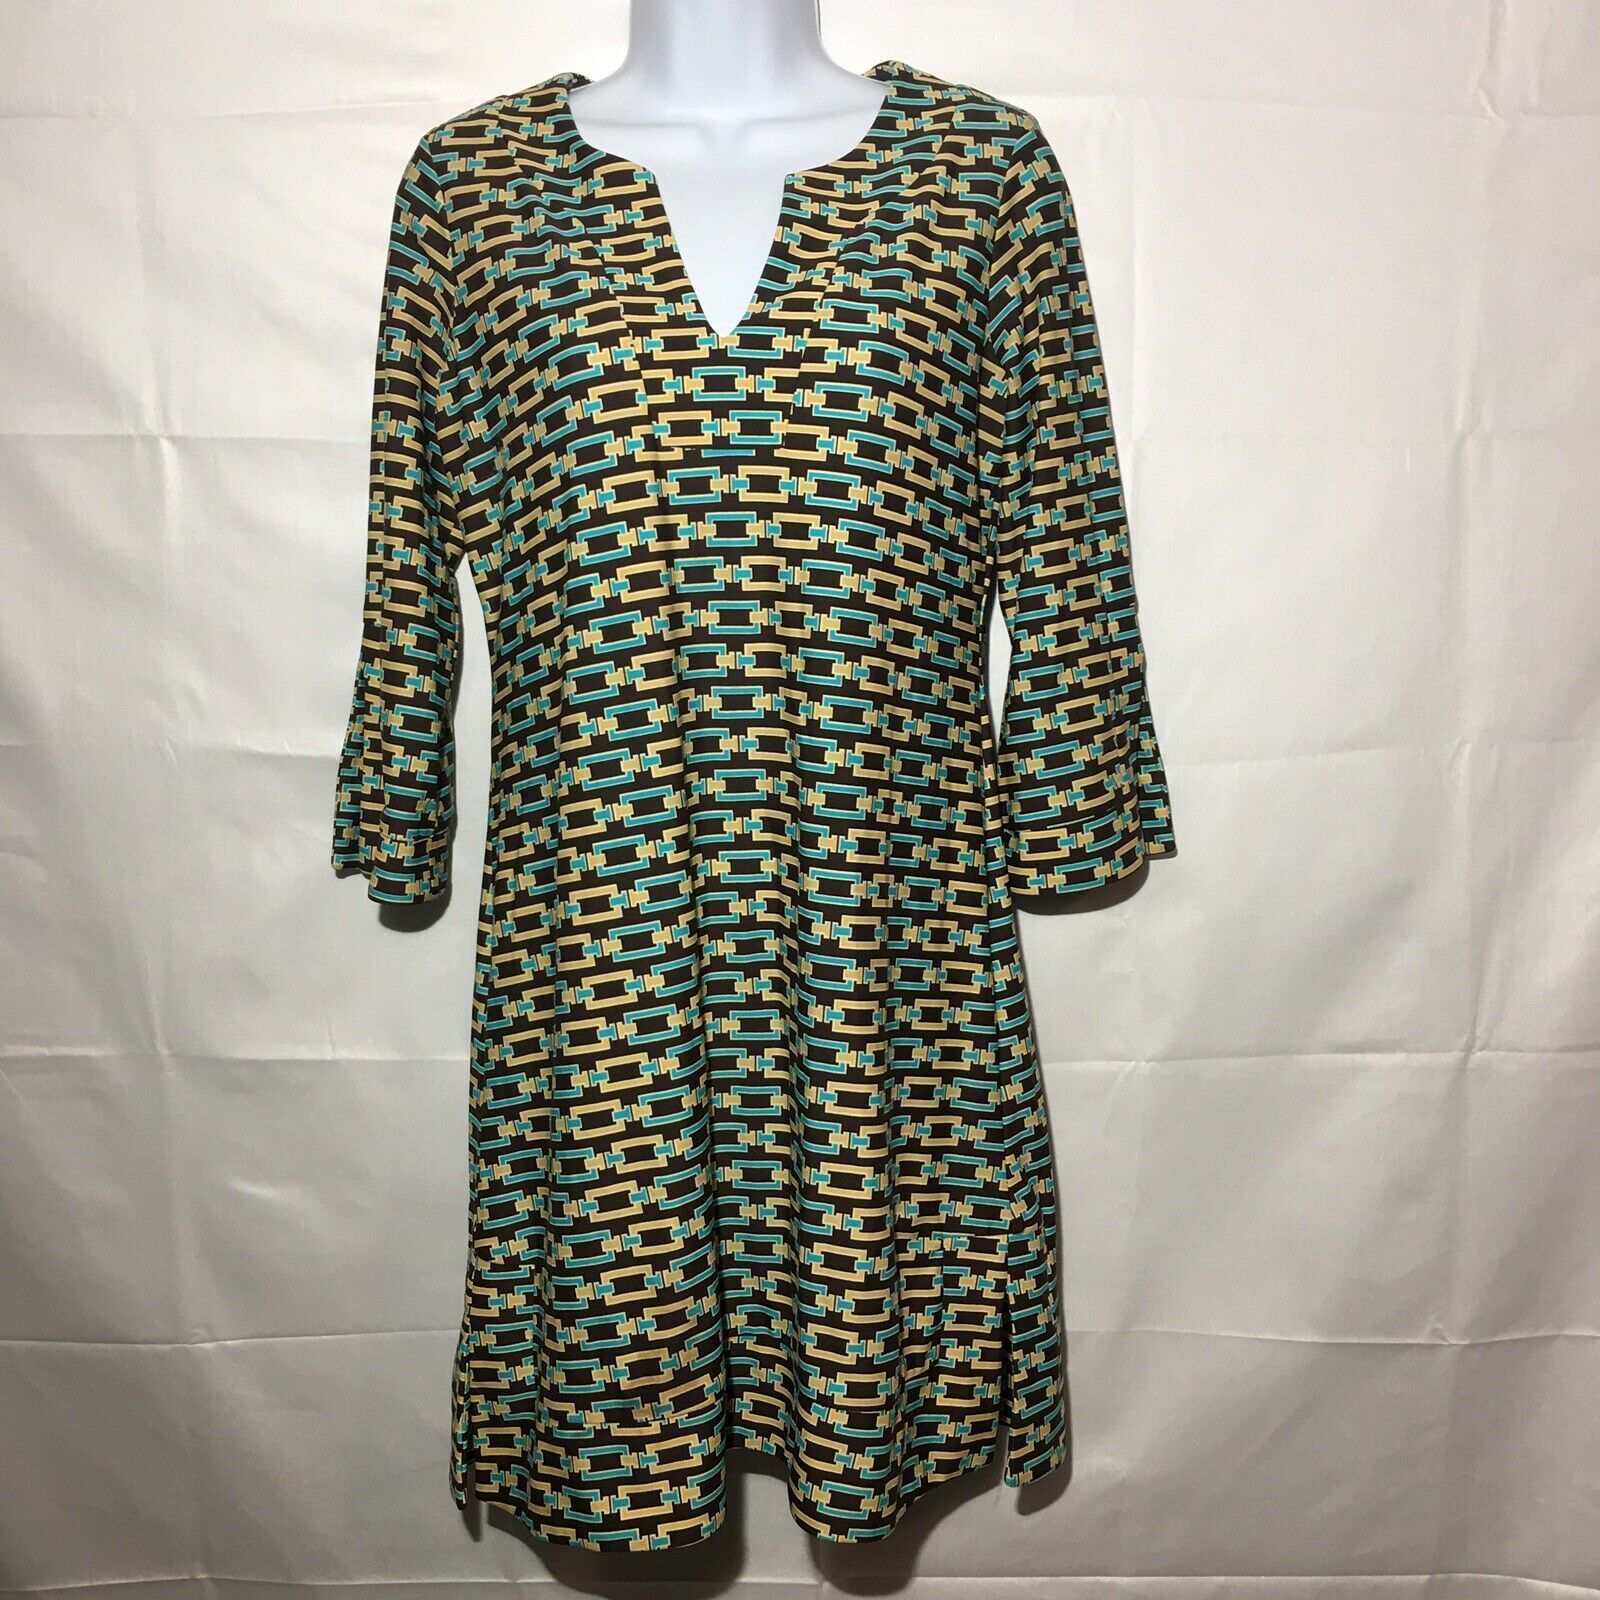 Jude Connally damen Short 70's Geometric Print 3 4 Sleeve Dress Größe XS